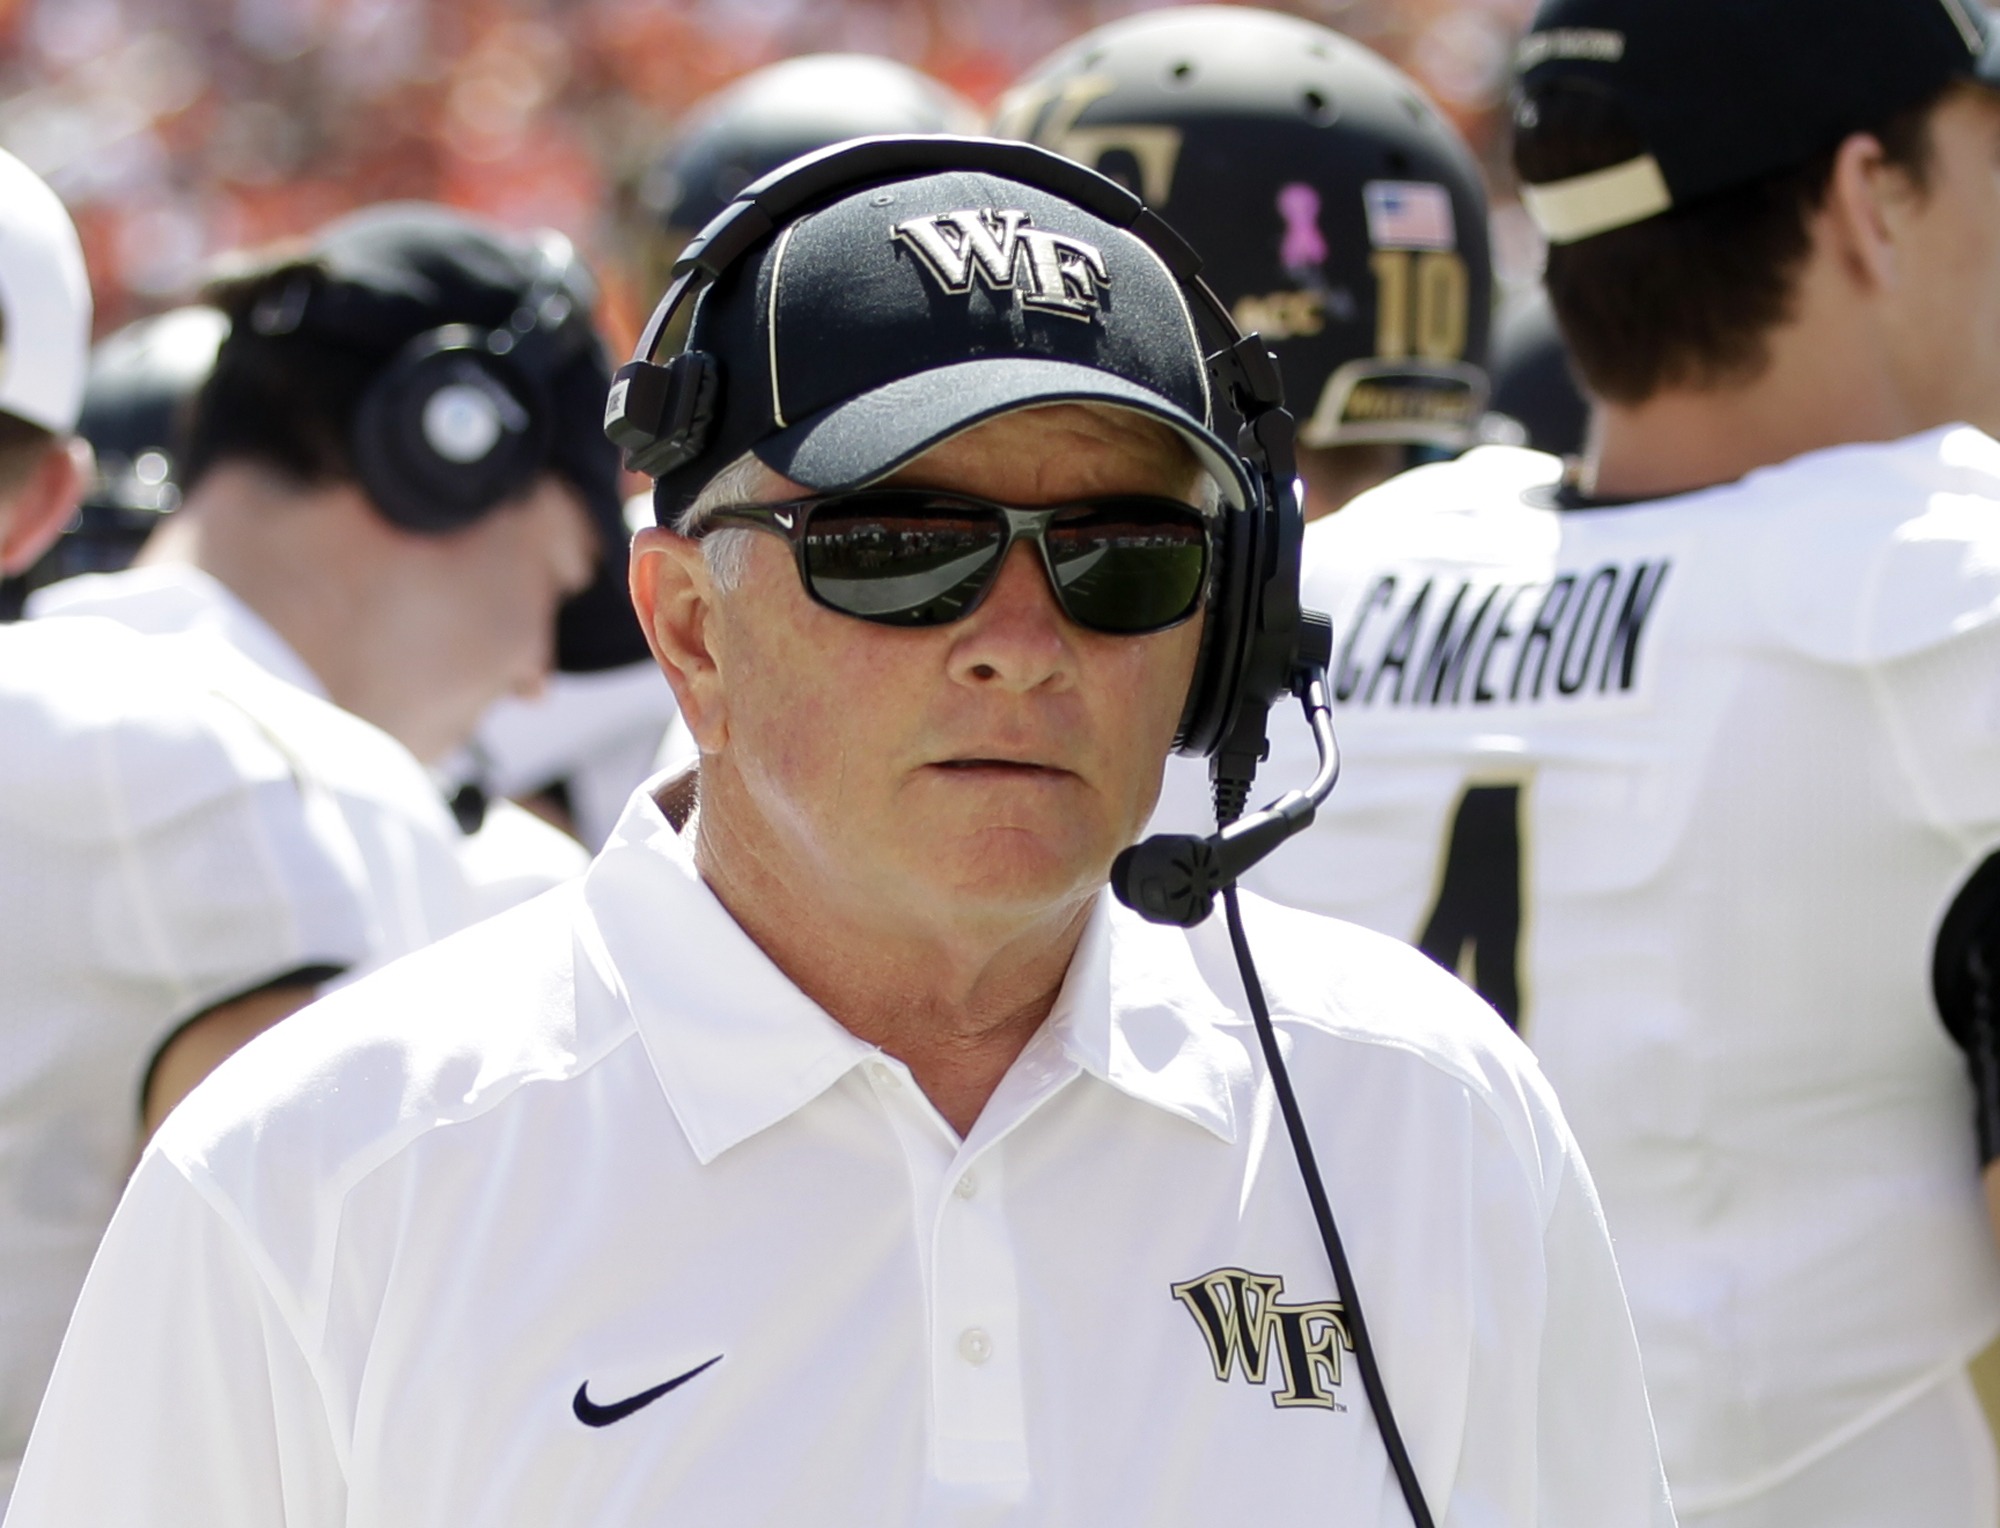 Wake Forest head coach Jim Grobe is shown  during an NCAA college football game against Miami, Saturday, Oct. 26, 2013, in Miami Gardens, Fla. Miami won 24-21. (AP Photo/Alan Diaz)